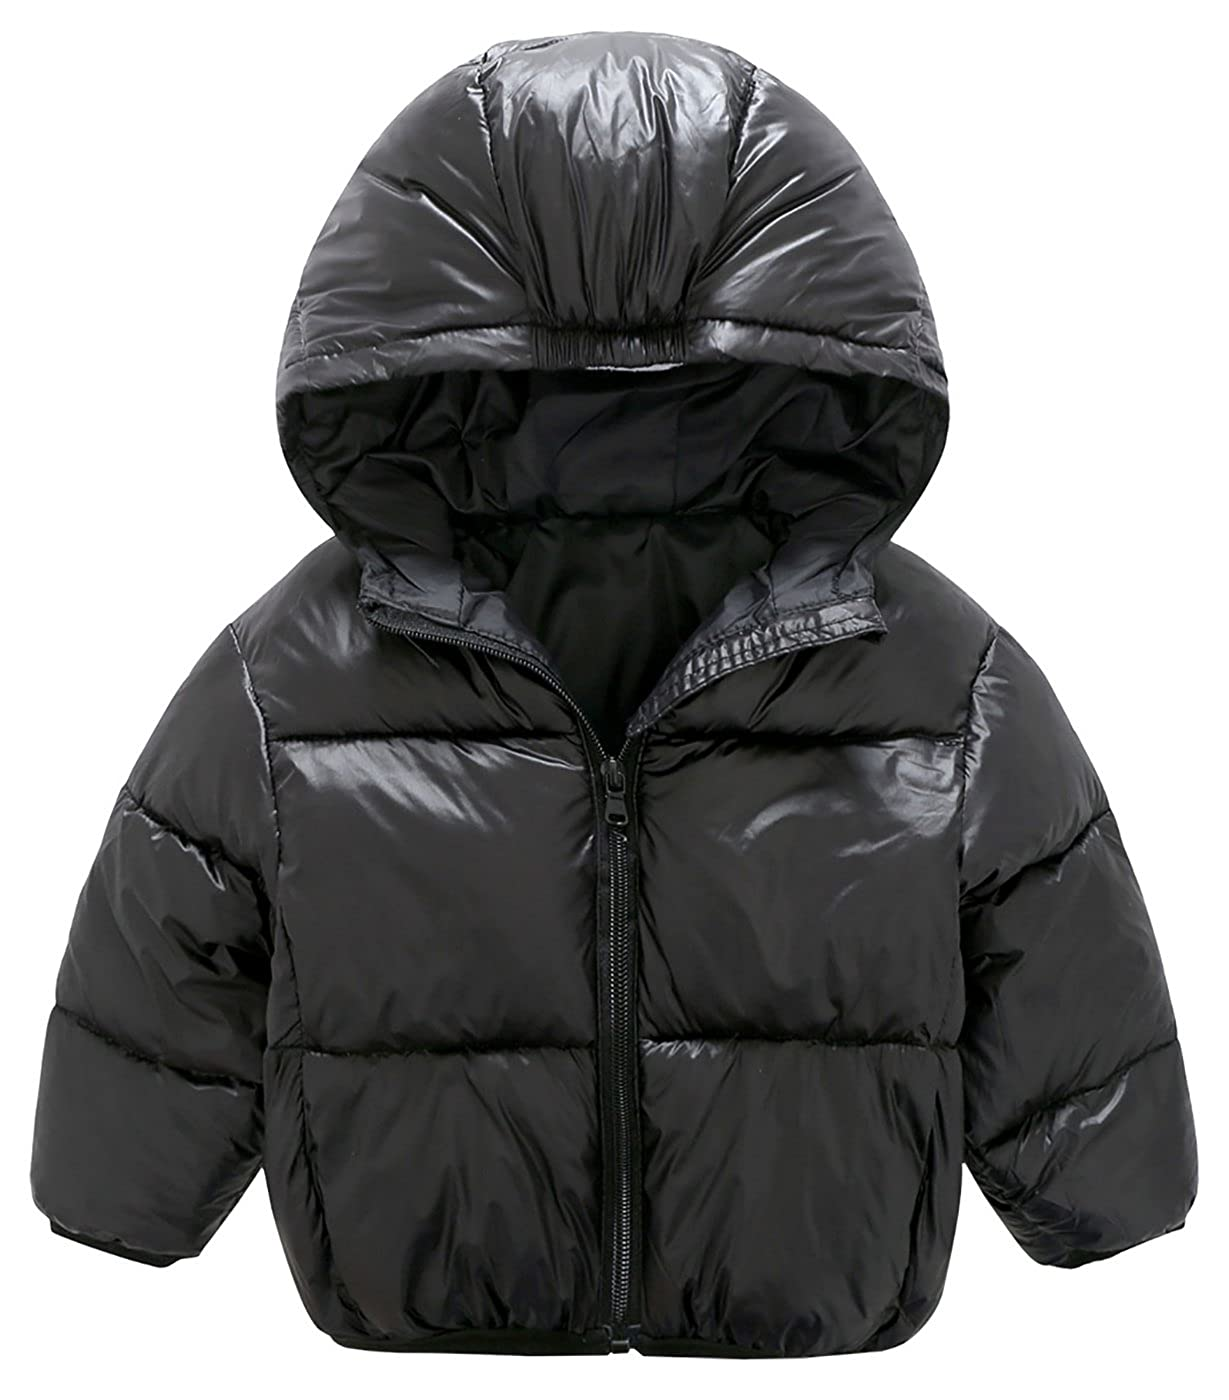 450f3bcec879 Top 10 wholesale Baby Down Jacket - Chinabrands.com